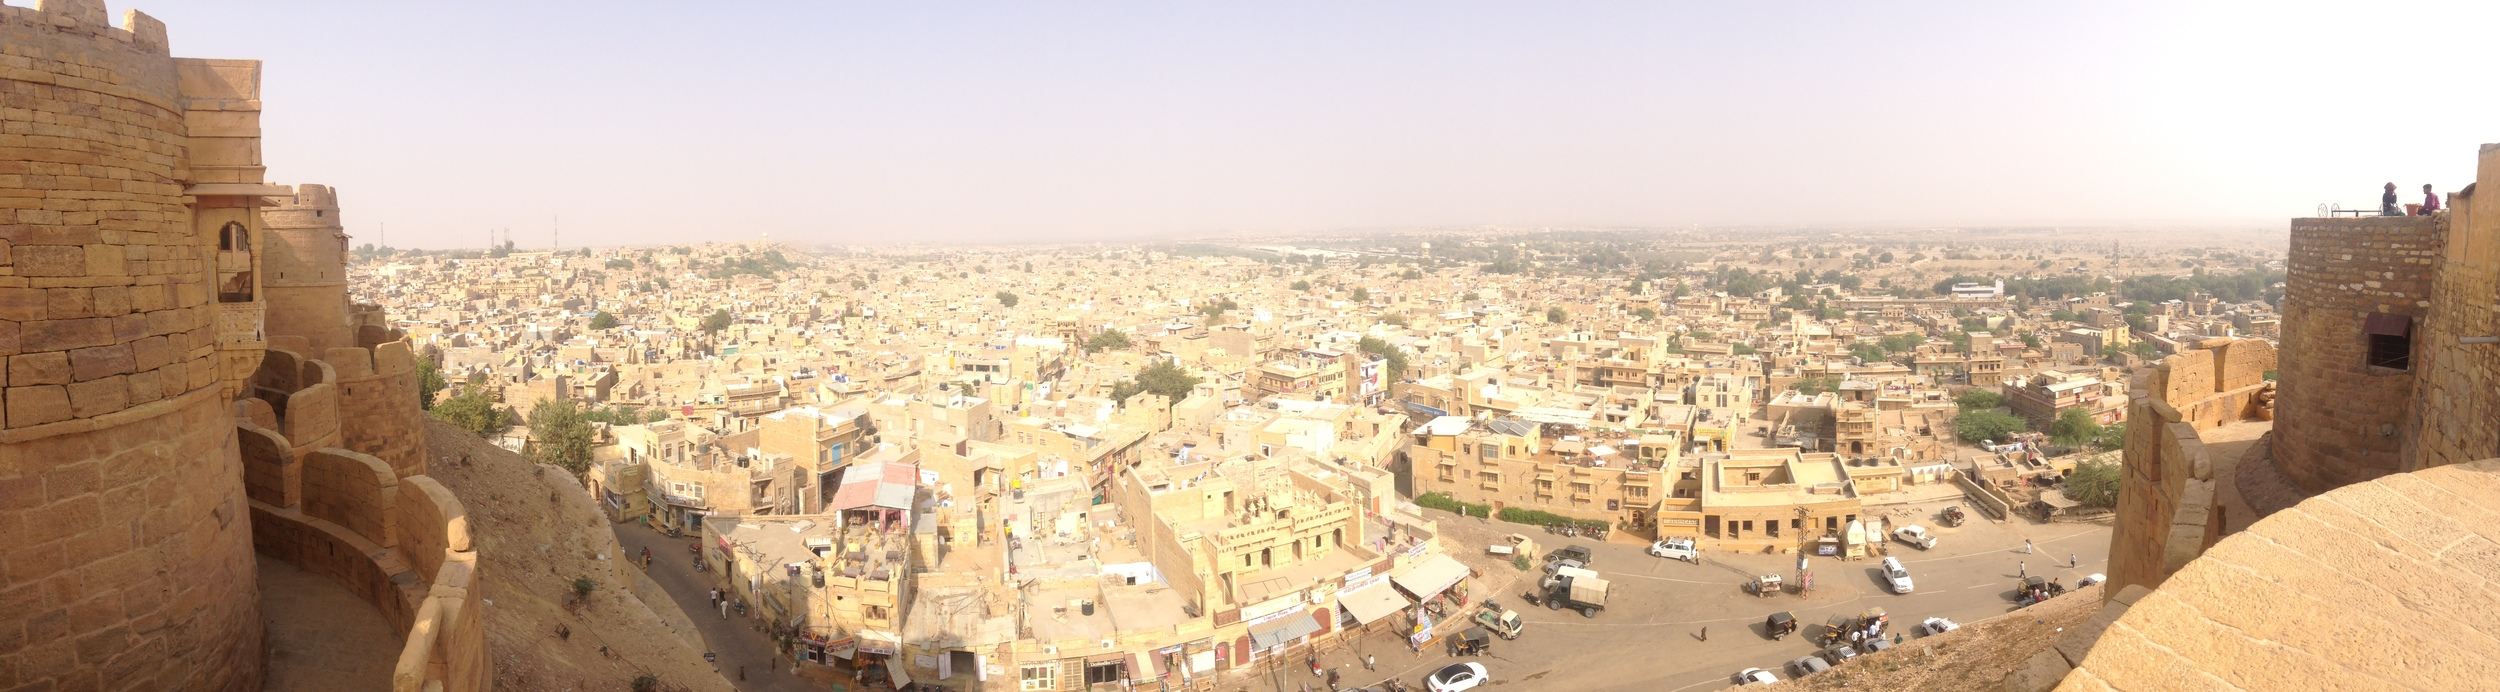 View of Jaisalmer from the fort.